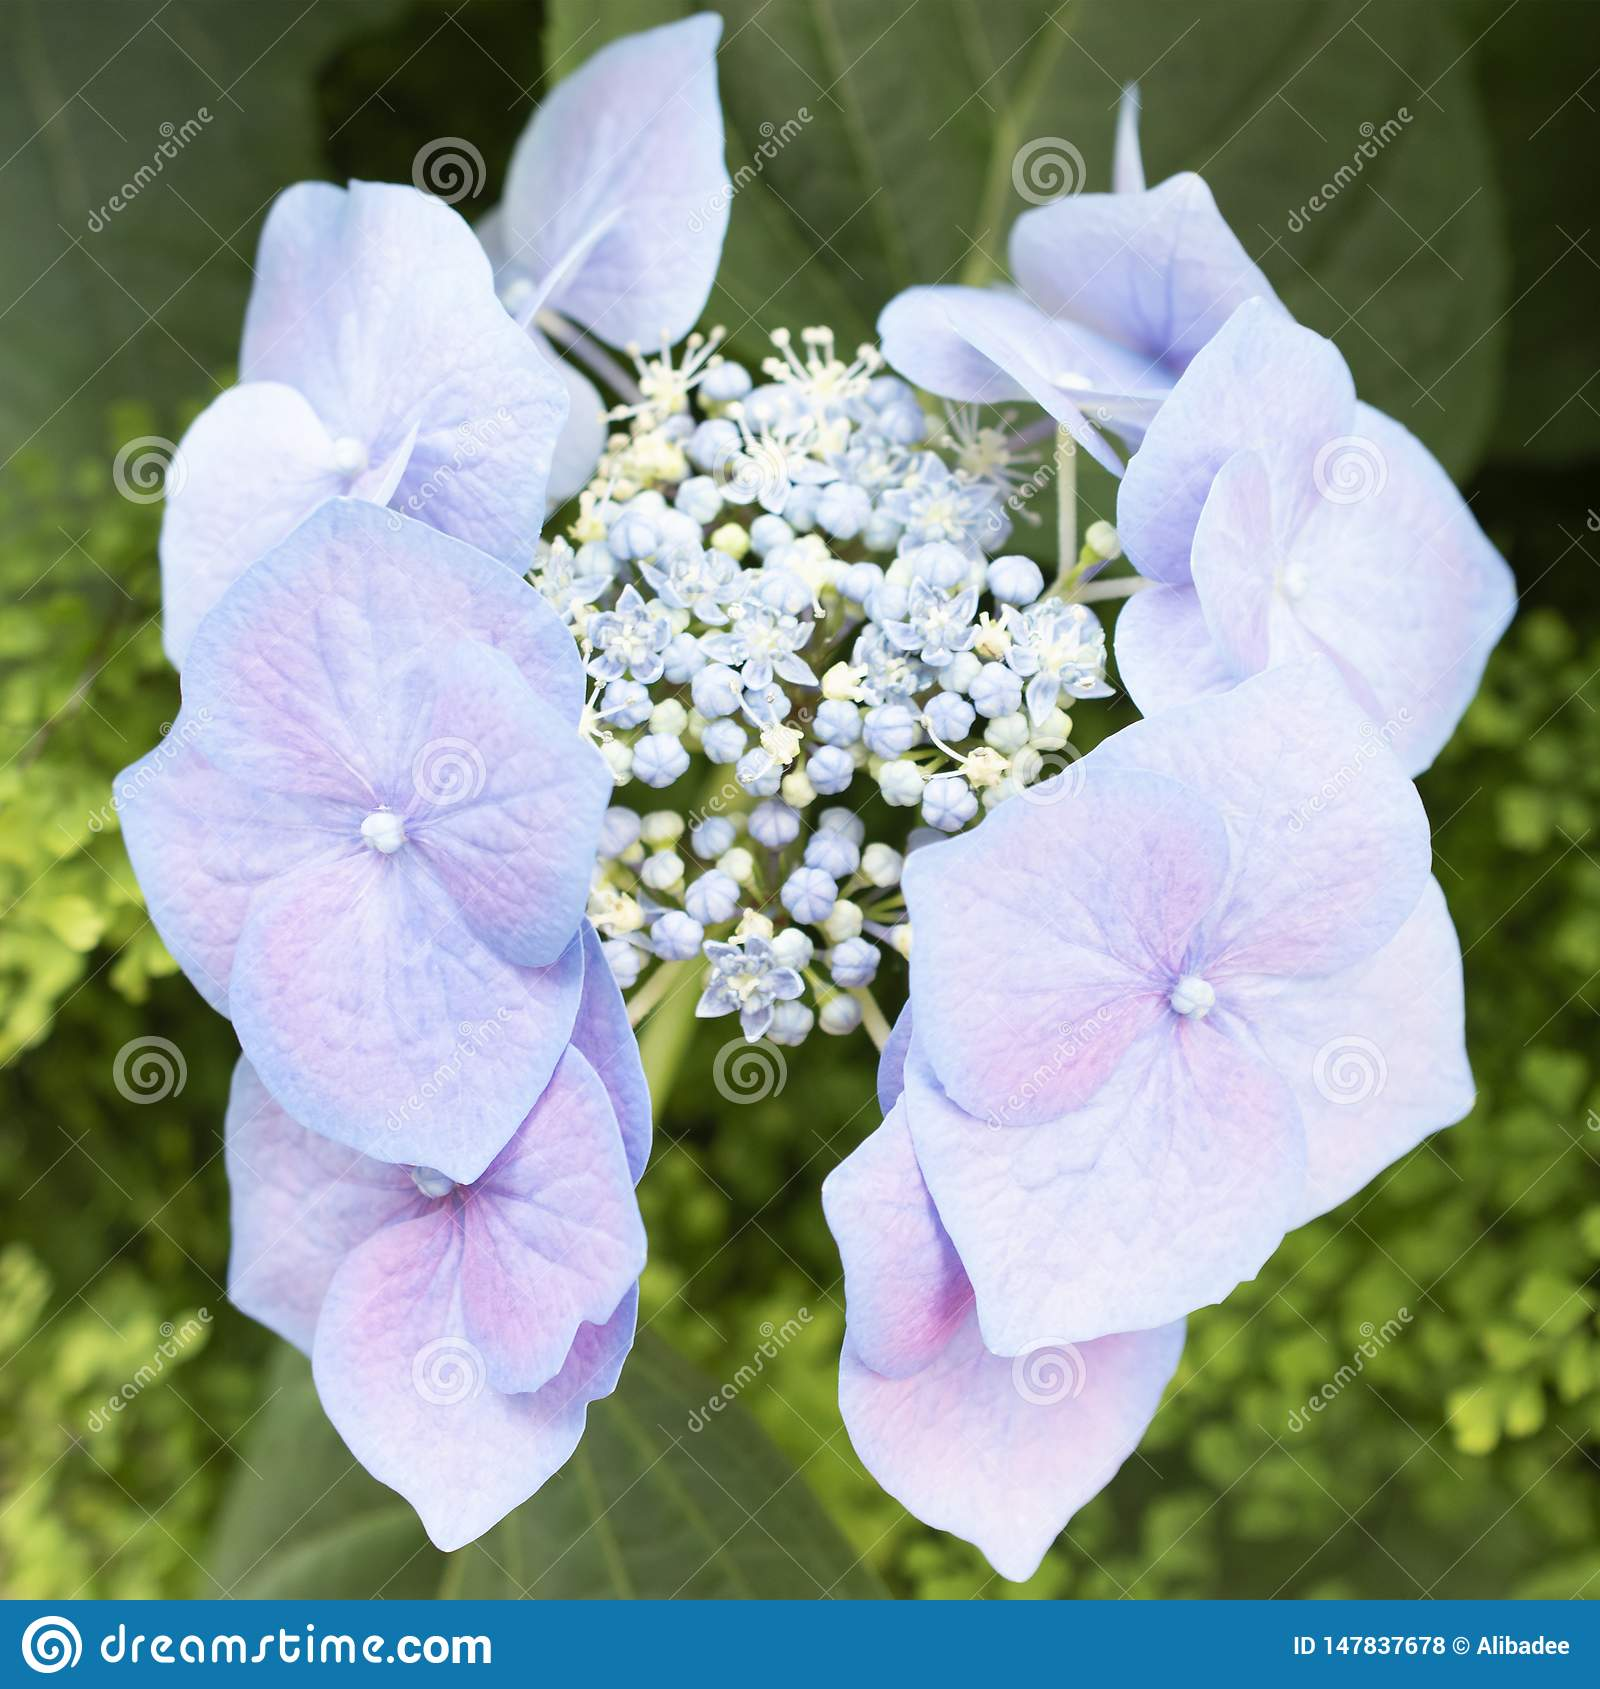 Dream Of Violet Flower Stock Photo Image Of Blossom 147837678